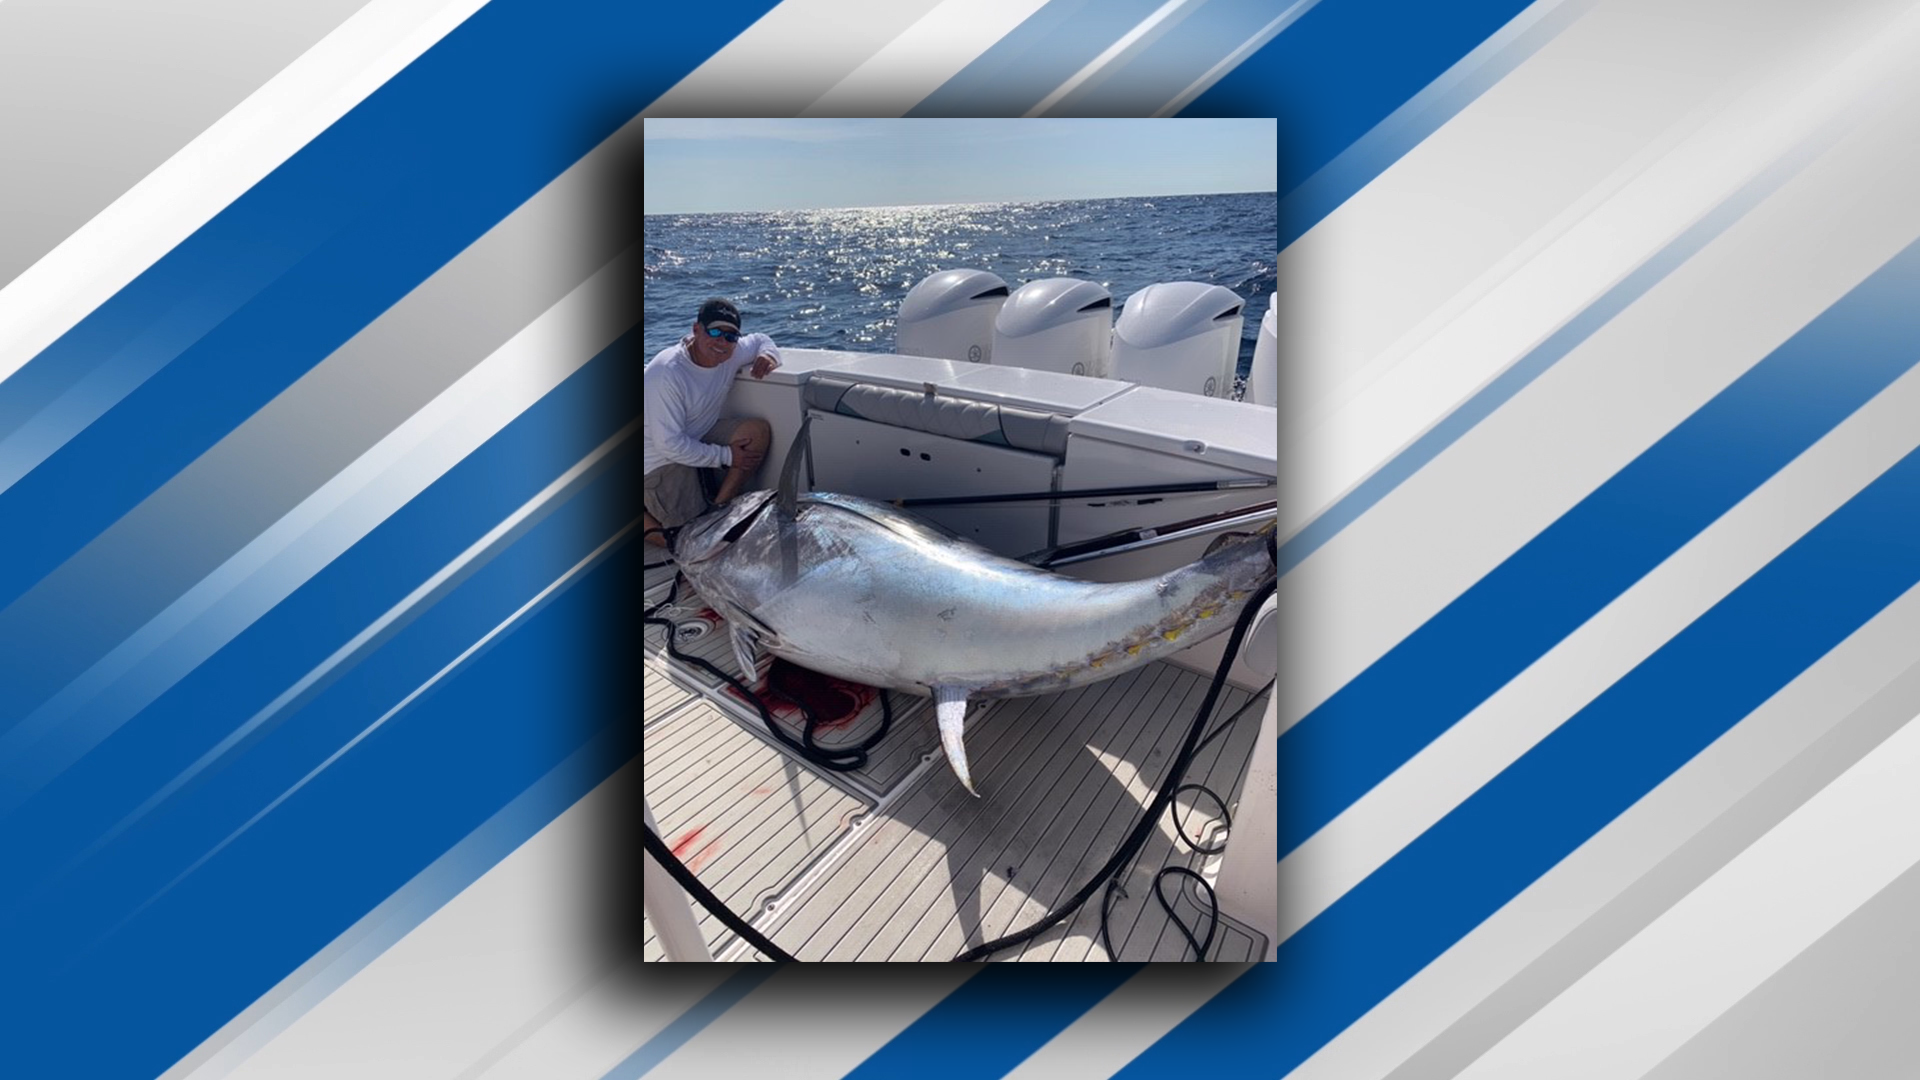 Captain Mike Busse of Reel Dusky Charters caught an 830 pound Atlantic bluefin tuna off the coast of Boca Raton. (Mike Busse){&nbsp;}<br>